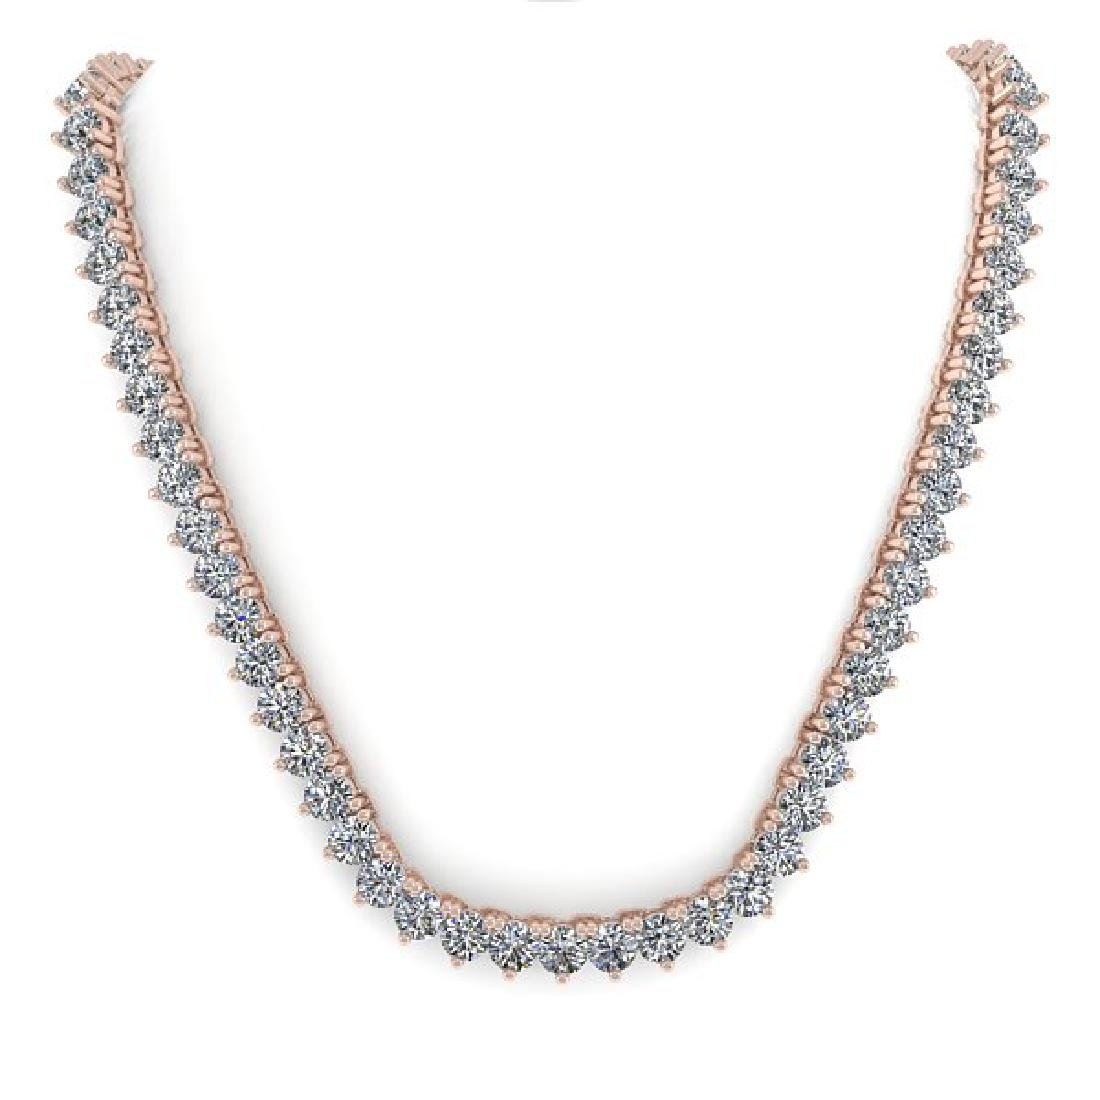 22 CTW Solitaire VS/SI Diamond Necklace 14K Rose Gold - 3